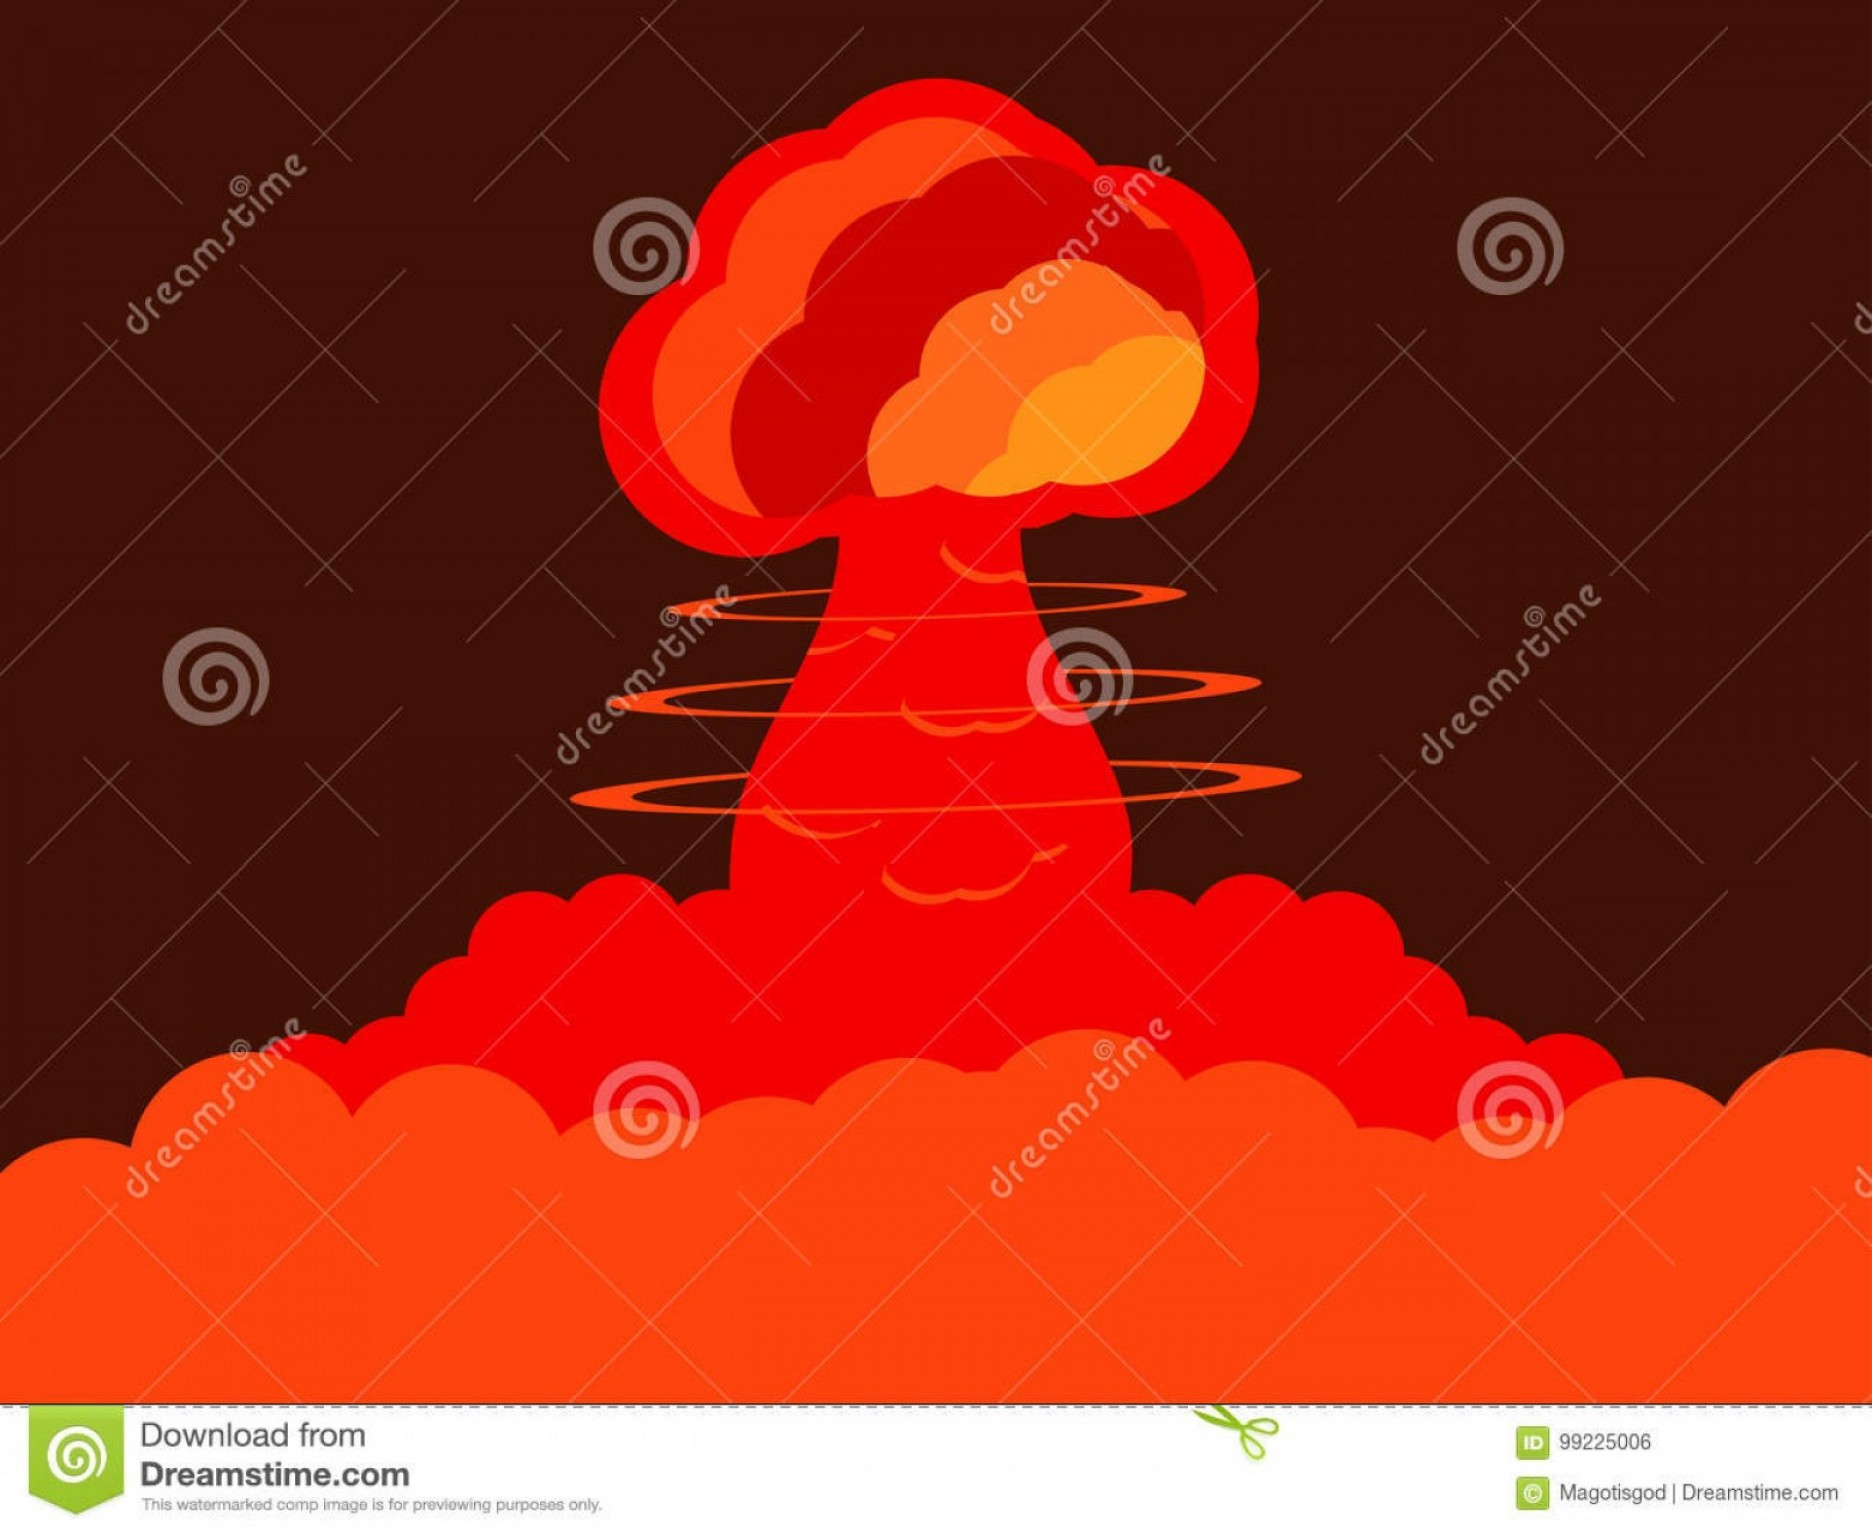 Atomic Bomb Explosion Vector: Stock Illustration Nuclear Explosion Atomic Bomb Vector Illustration Nuclear Explosion Atomic Bomb Vector Image